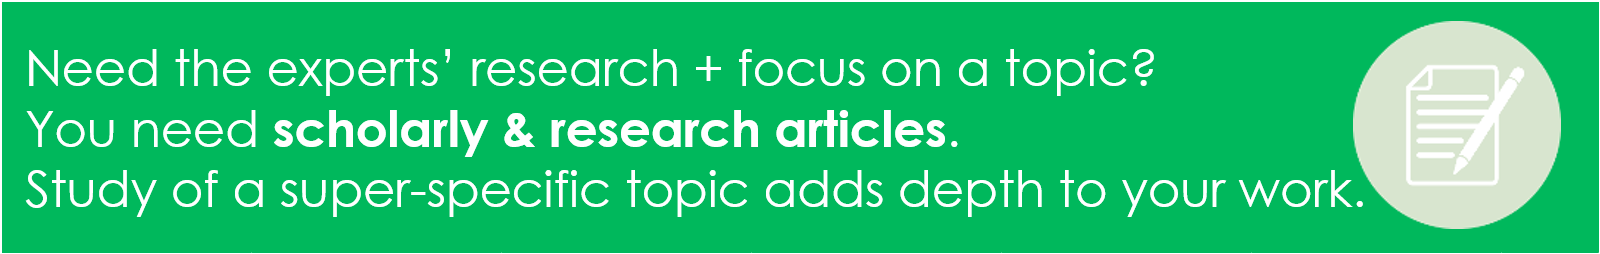 when you need to learn about expert-level focus on a topic, use scholarly and research articles to add depth to your work and understanding.